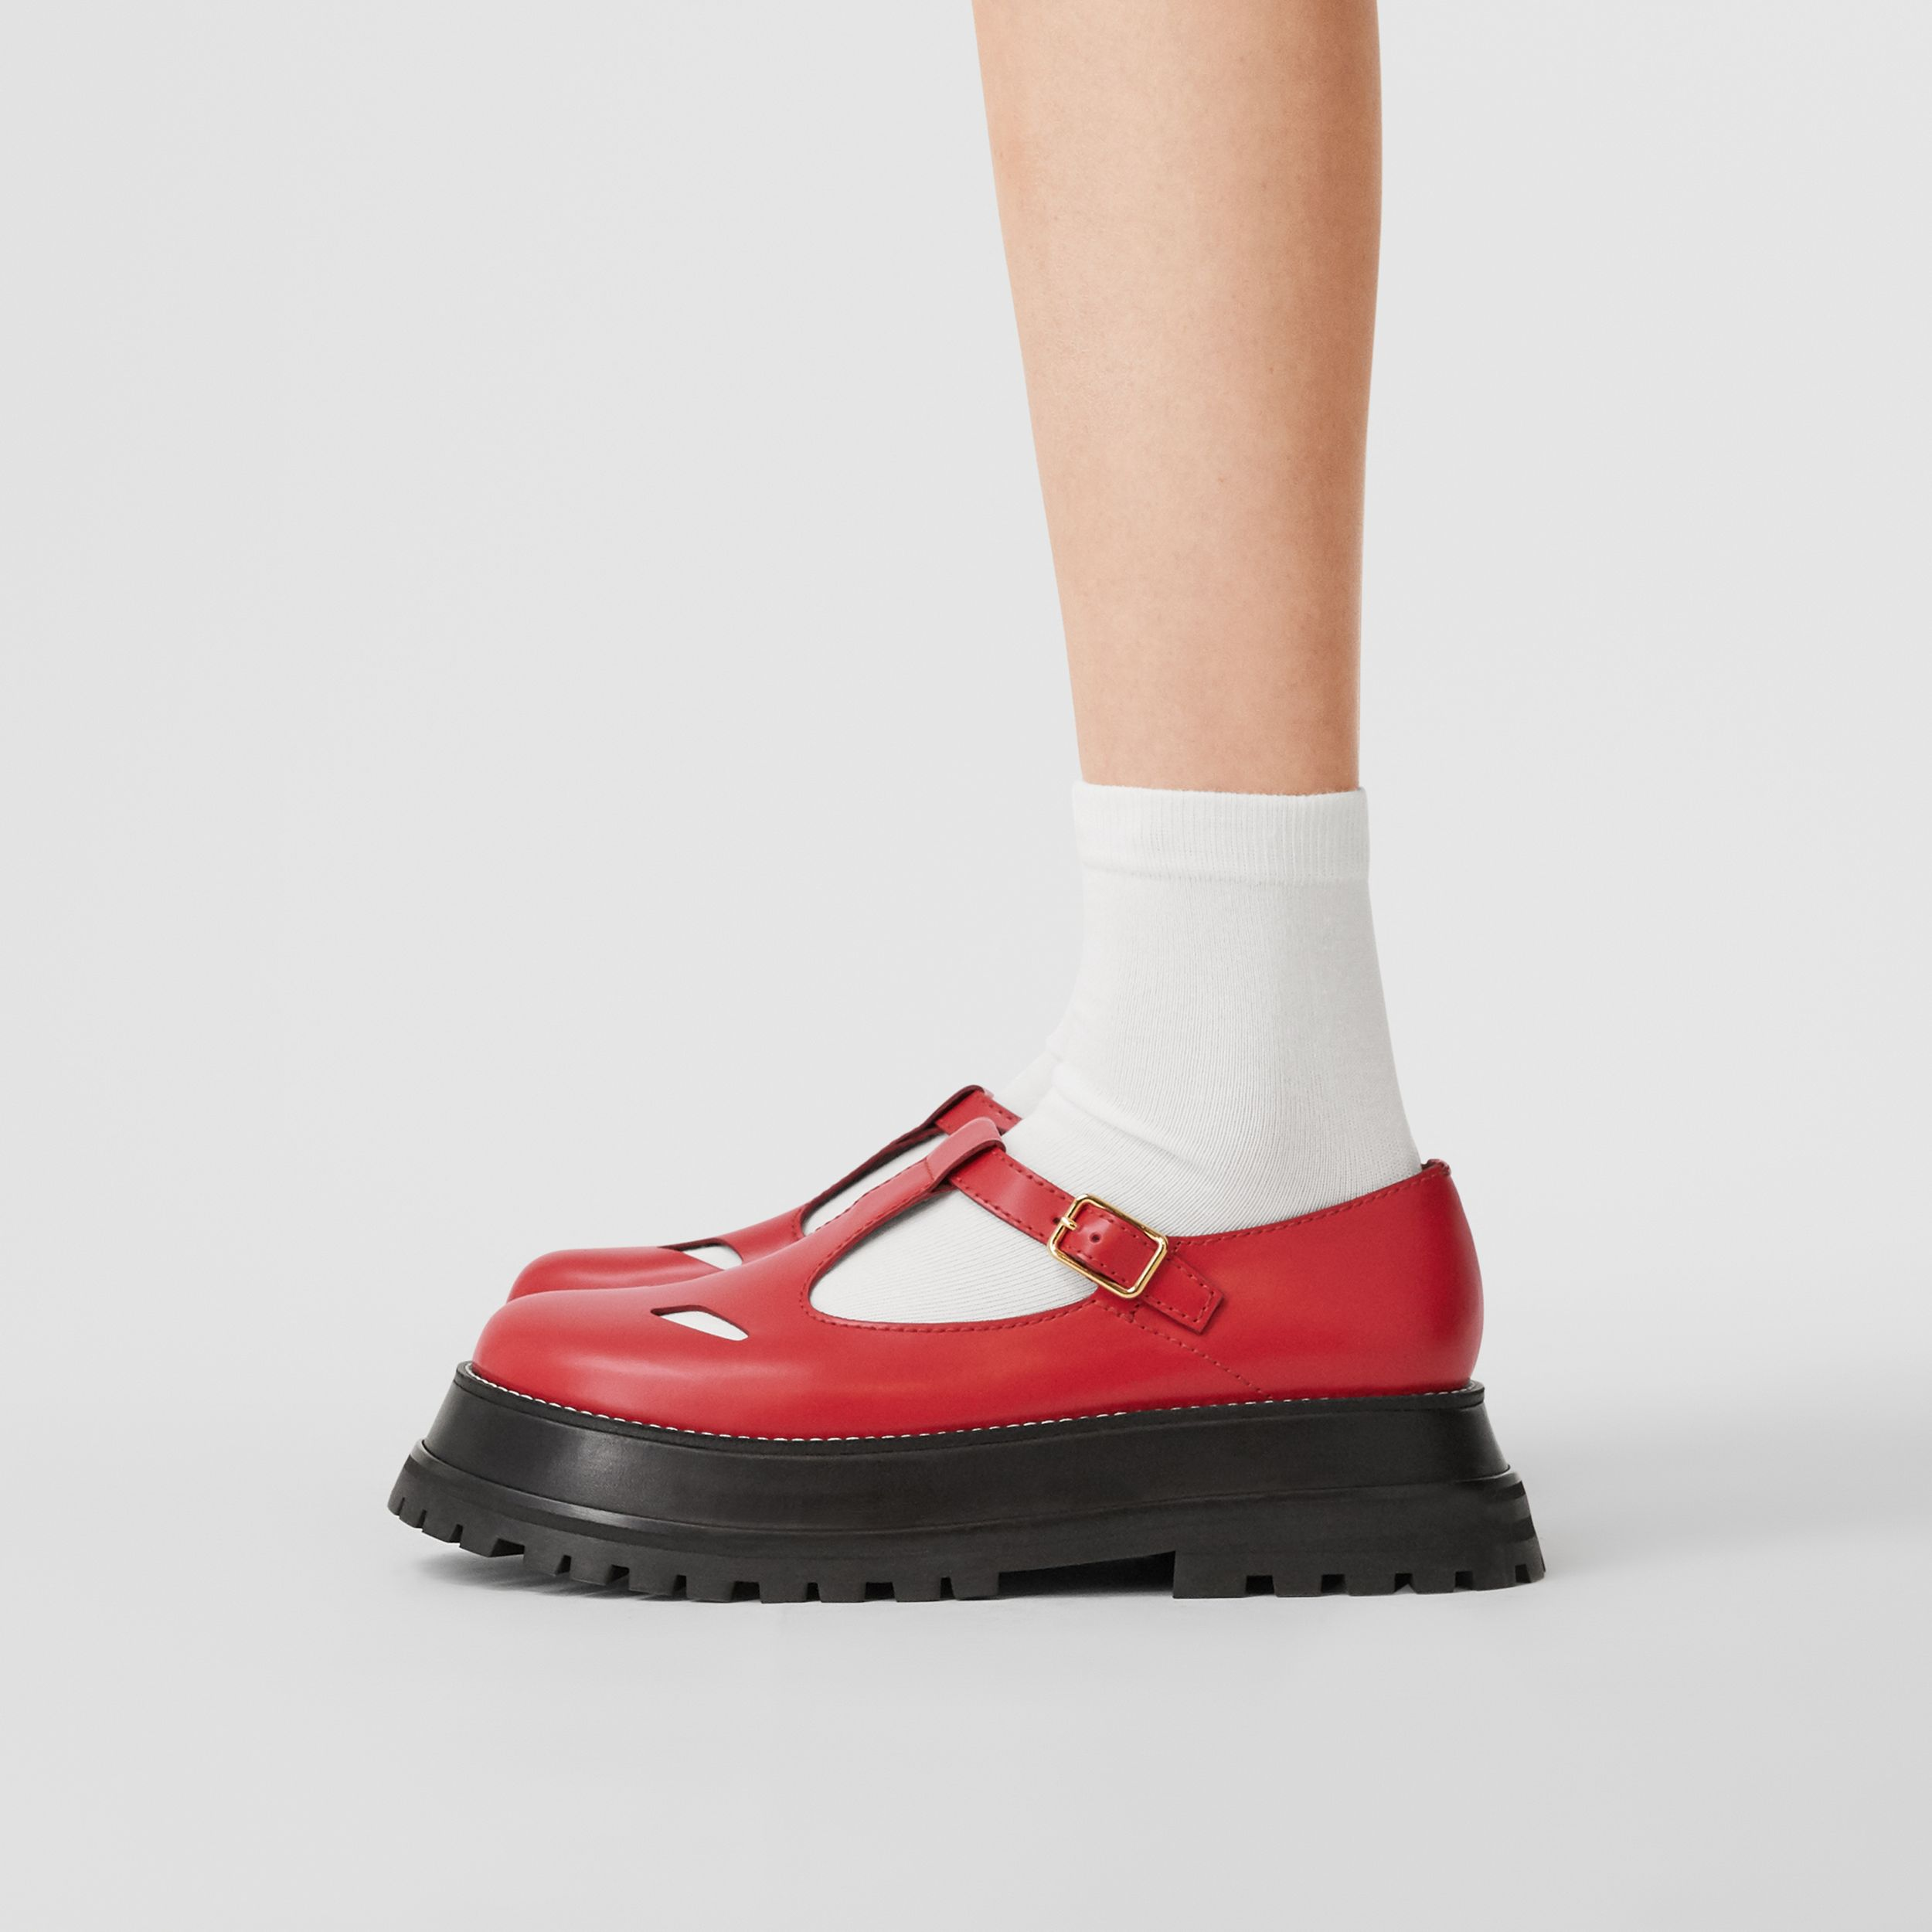 Leather T-bar Shoes in Red - Women | Burberry Canada - 3